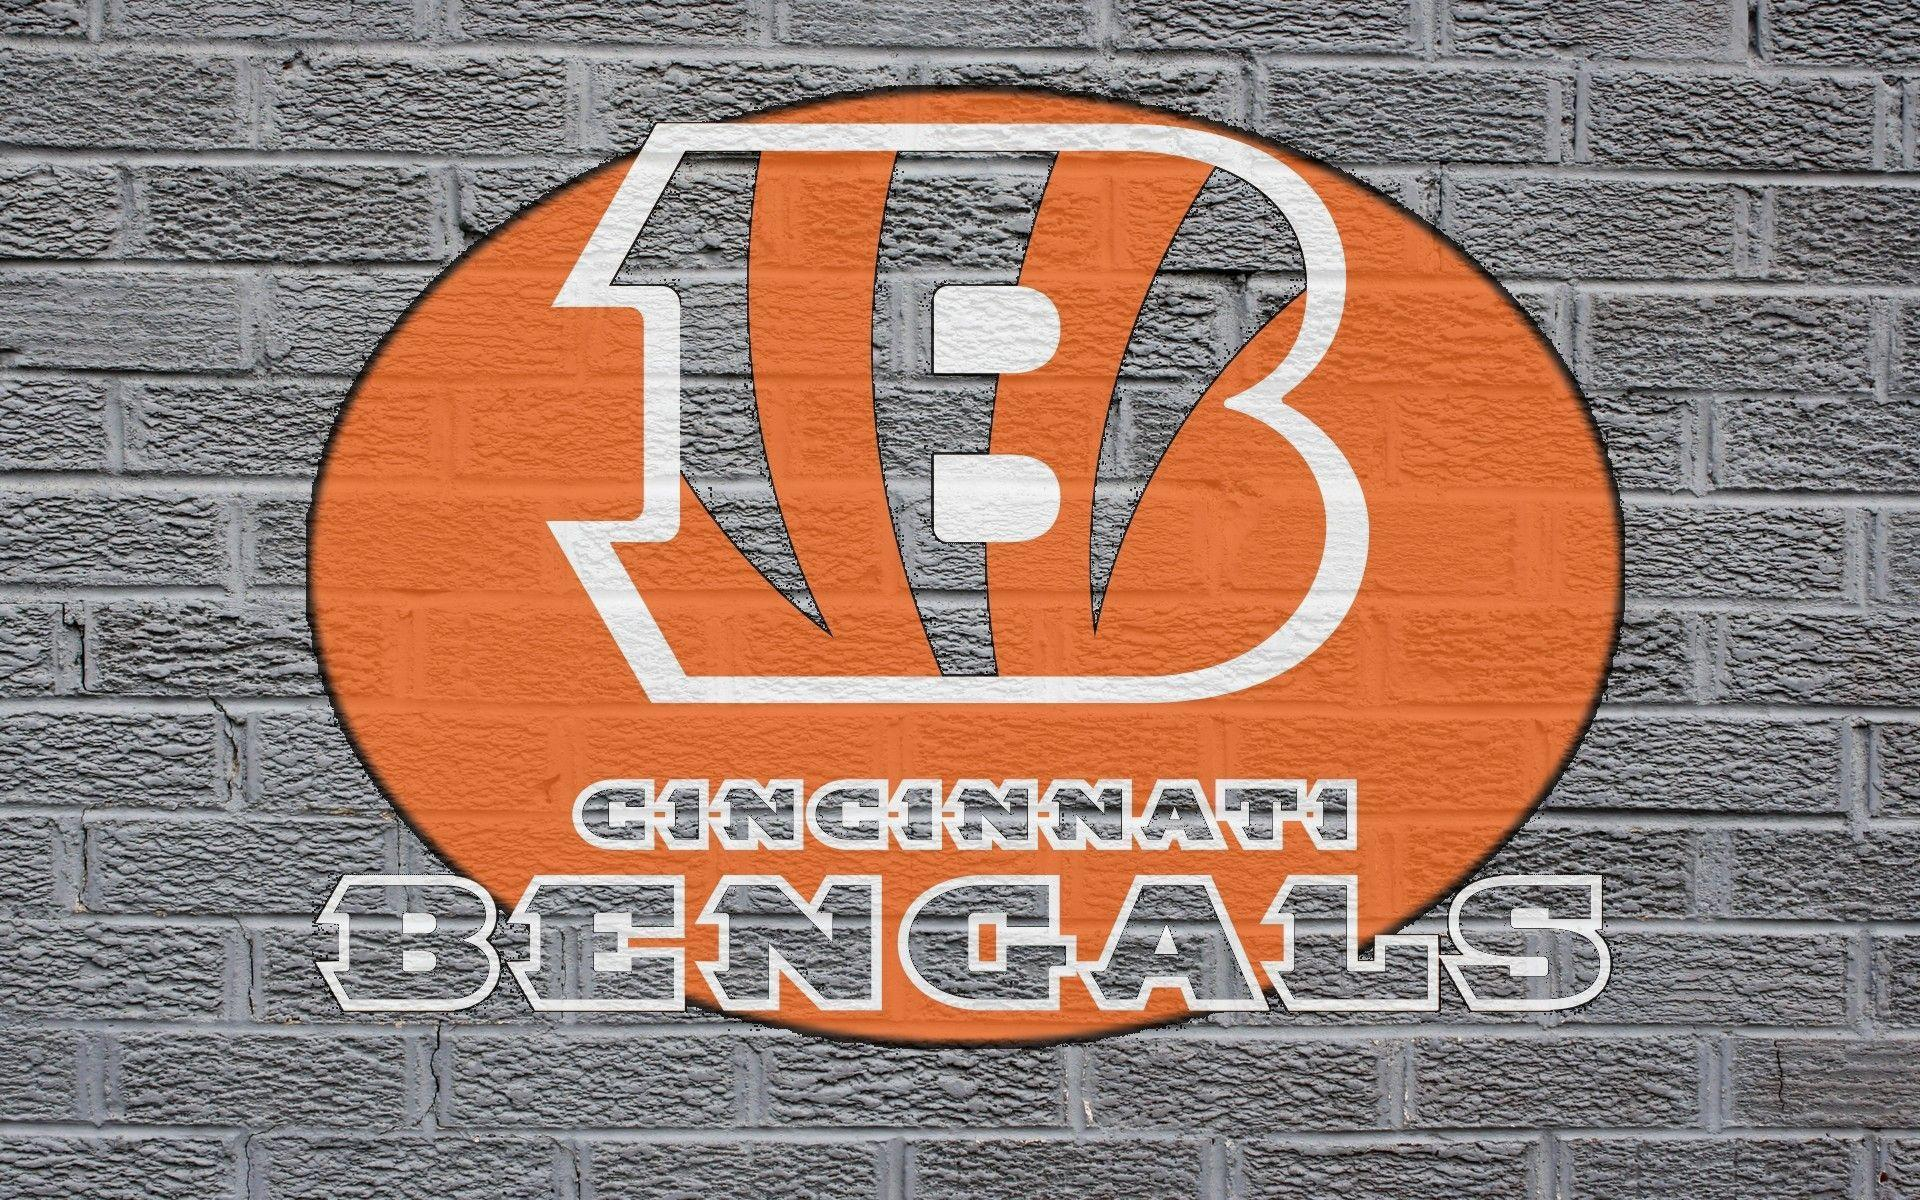 Cincinnati Bengals wallpaper - 1001968